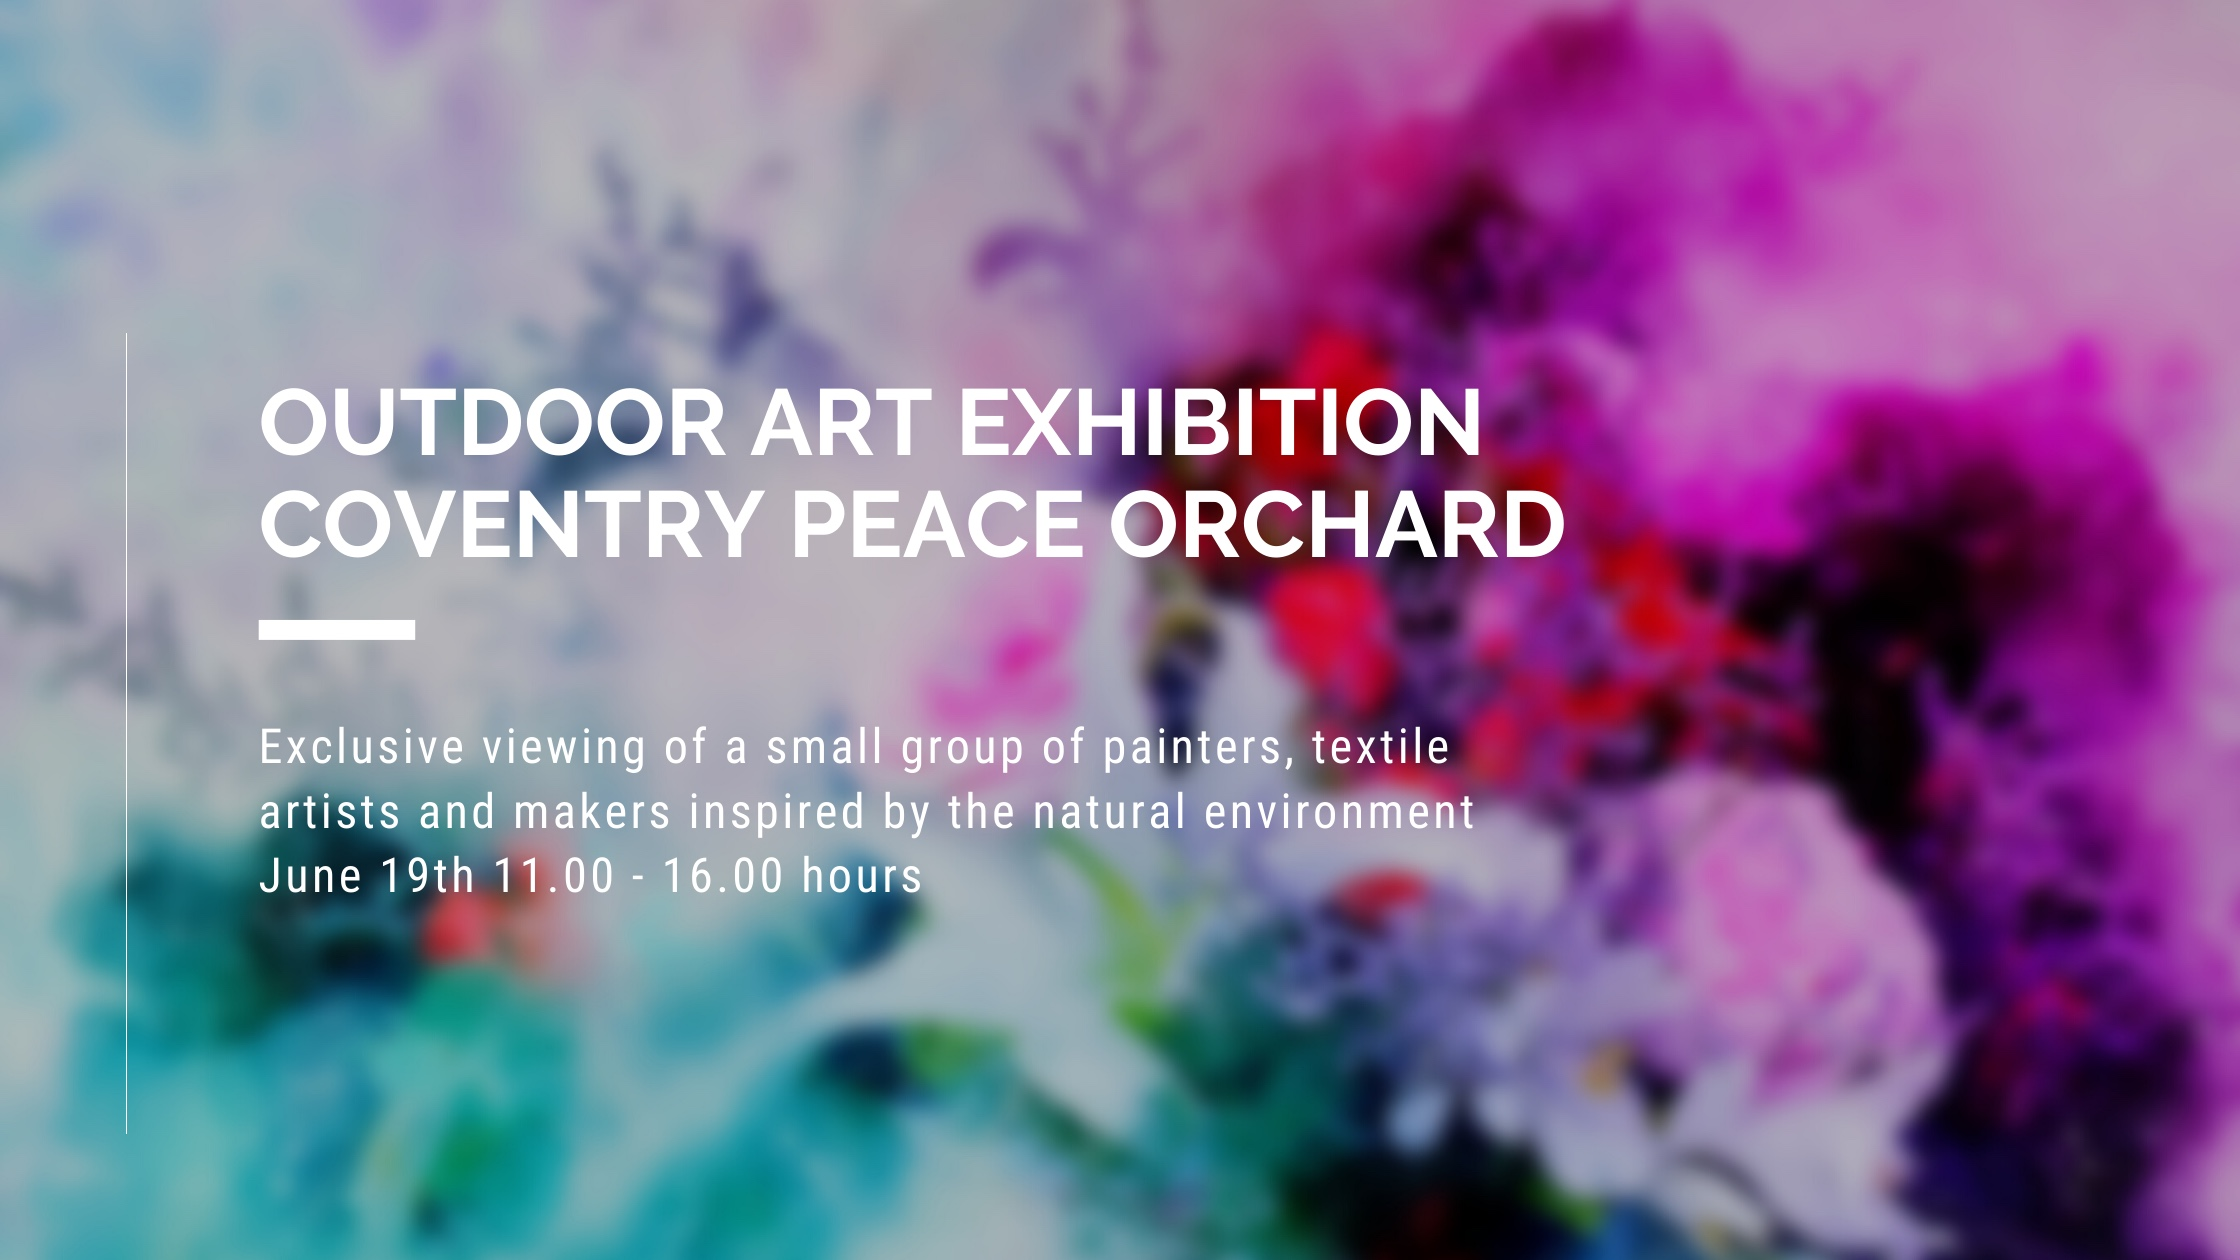 Exclusive viewing of a small group of painters, textile artists and makers inspired by the natural environment.